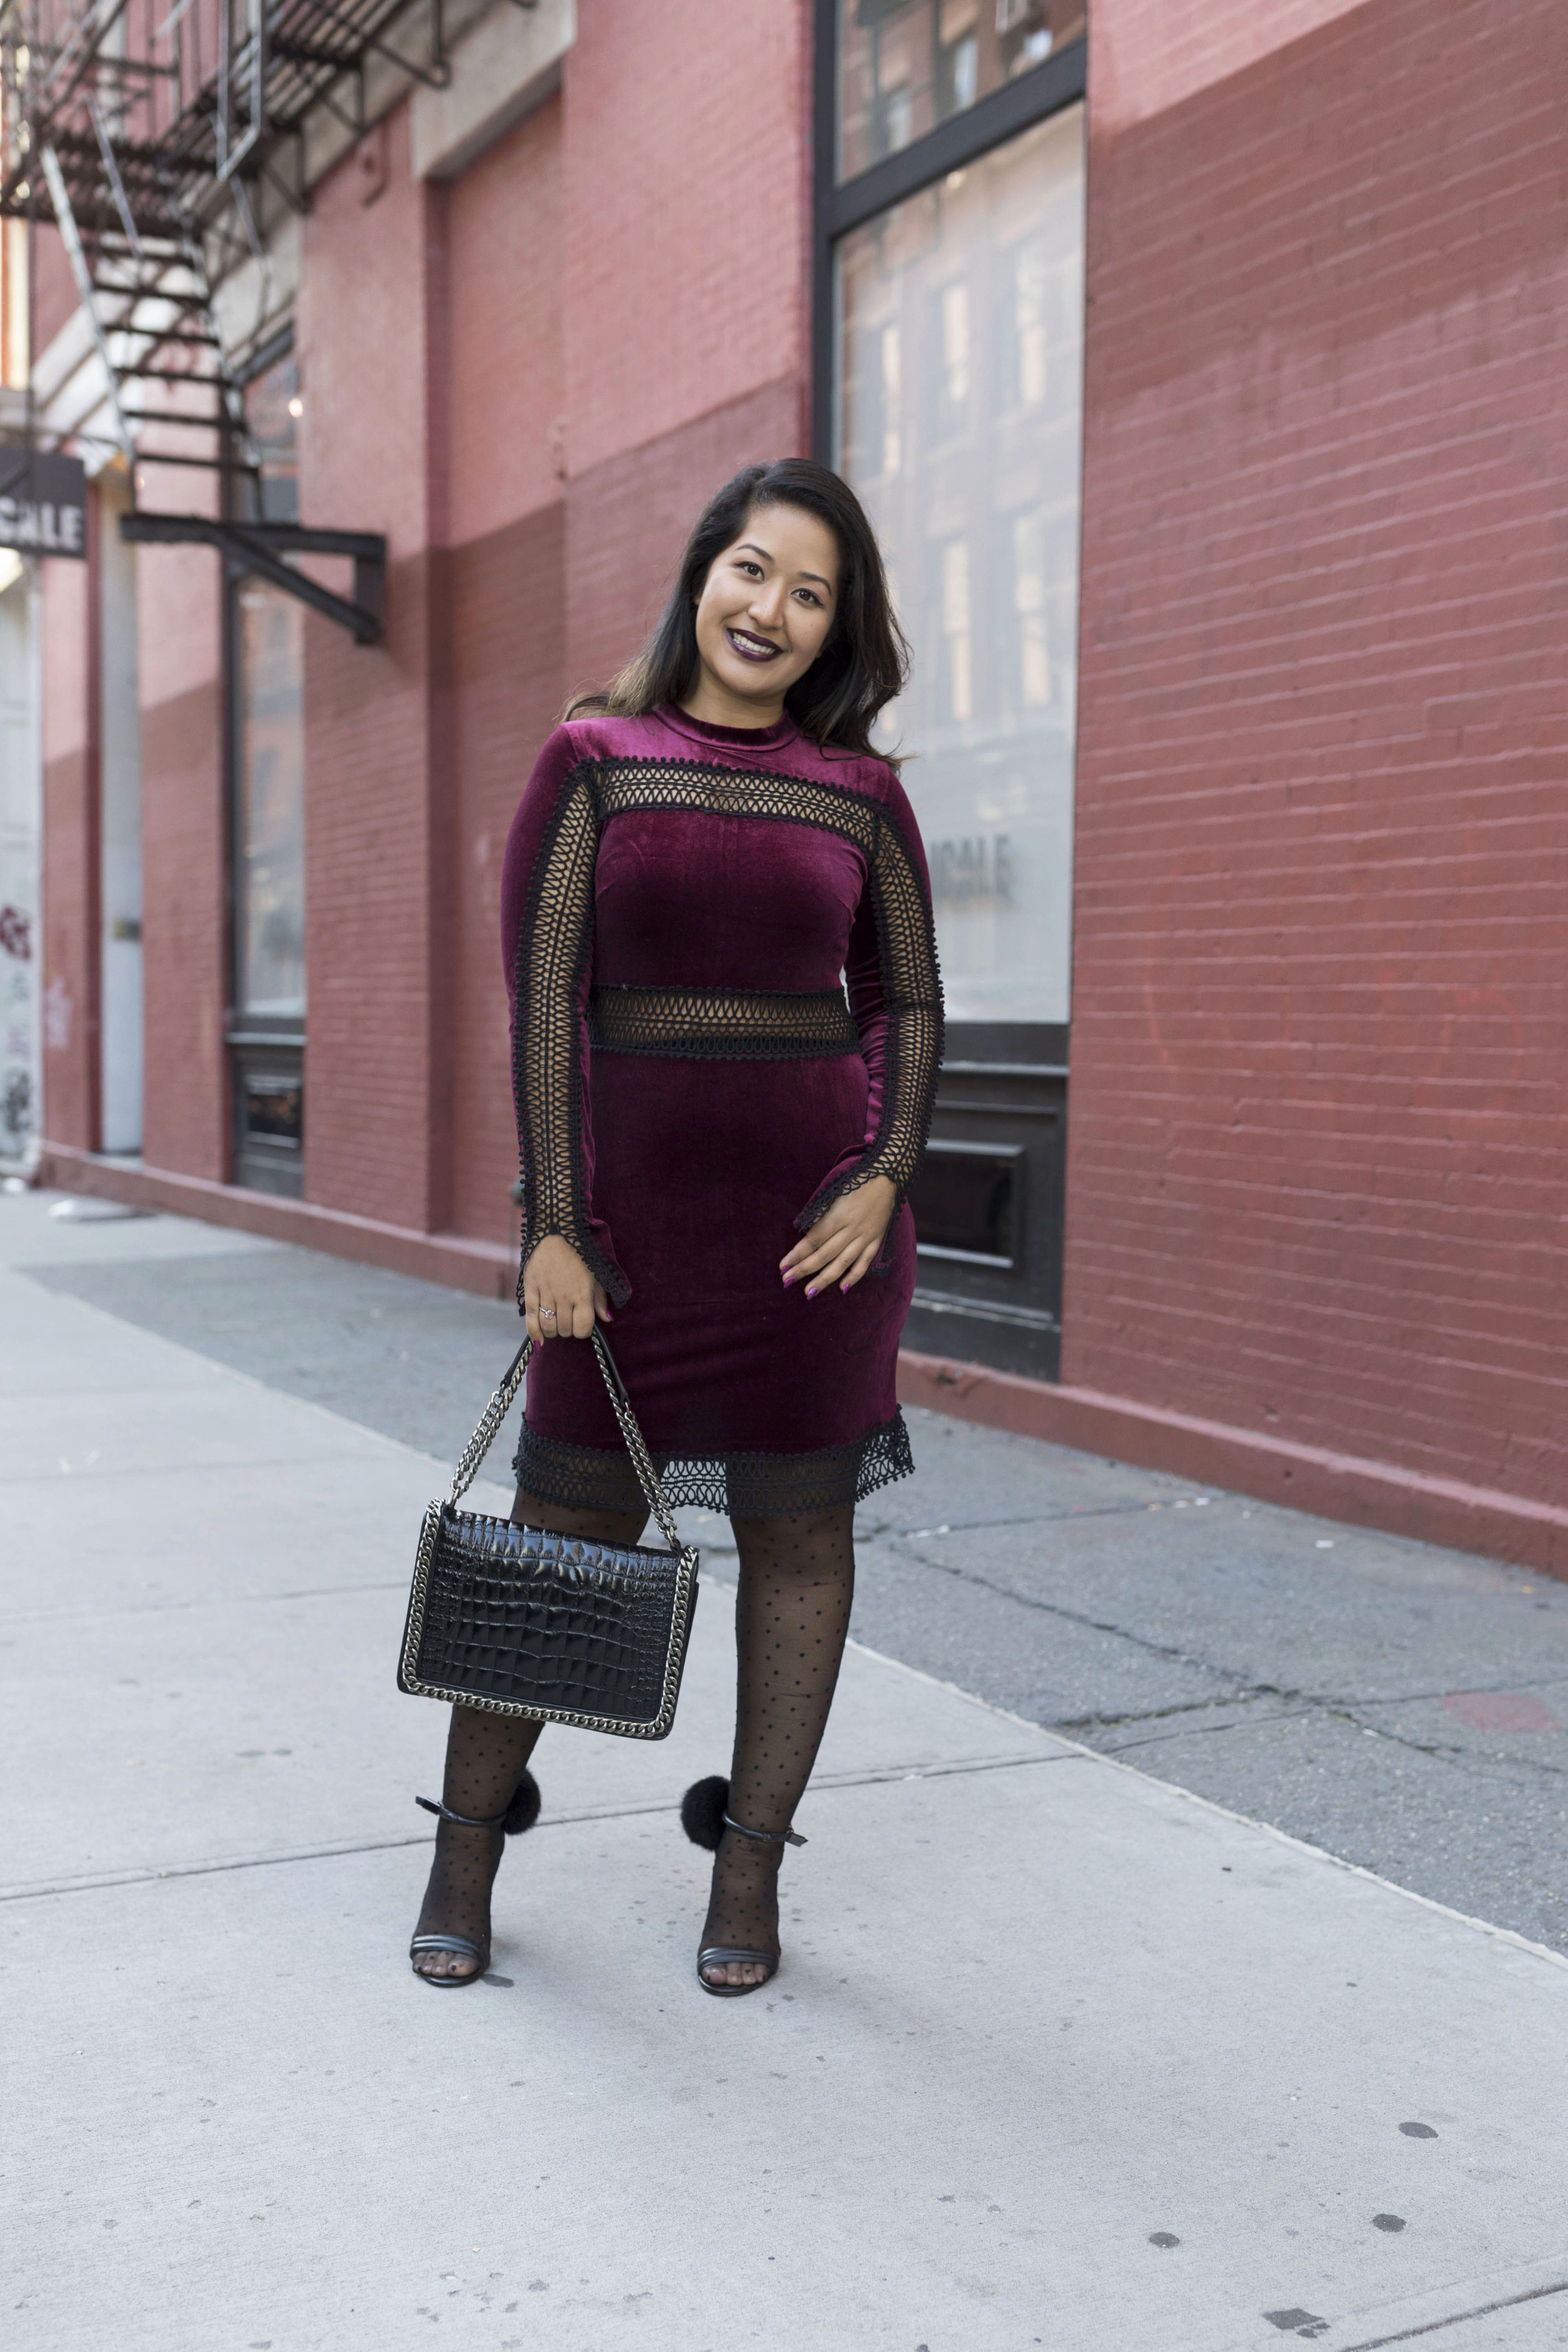 Krity S x Holiday Outfit x Century 21 Burgundy Velvet Dress and Faux Fur9.jpg